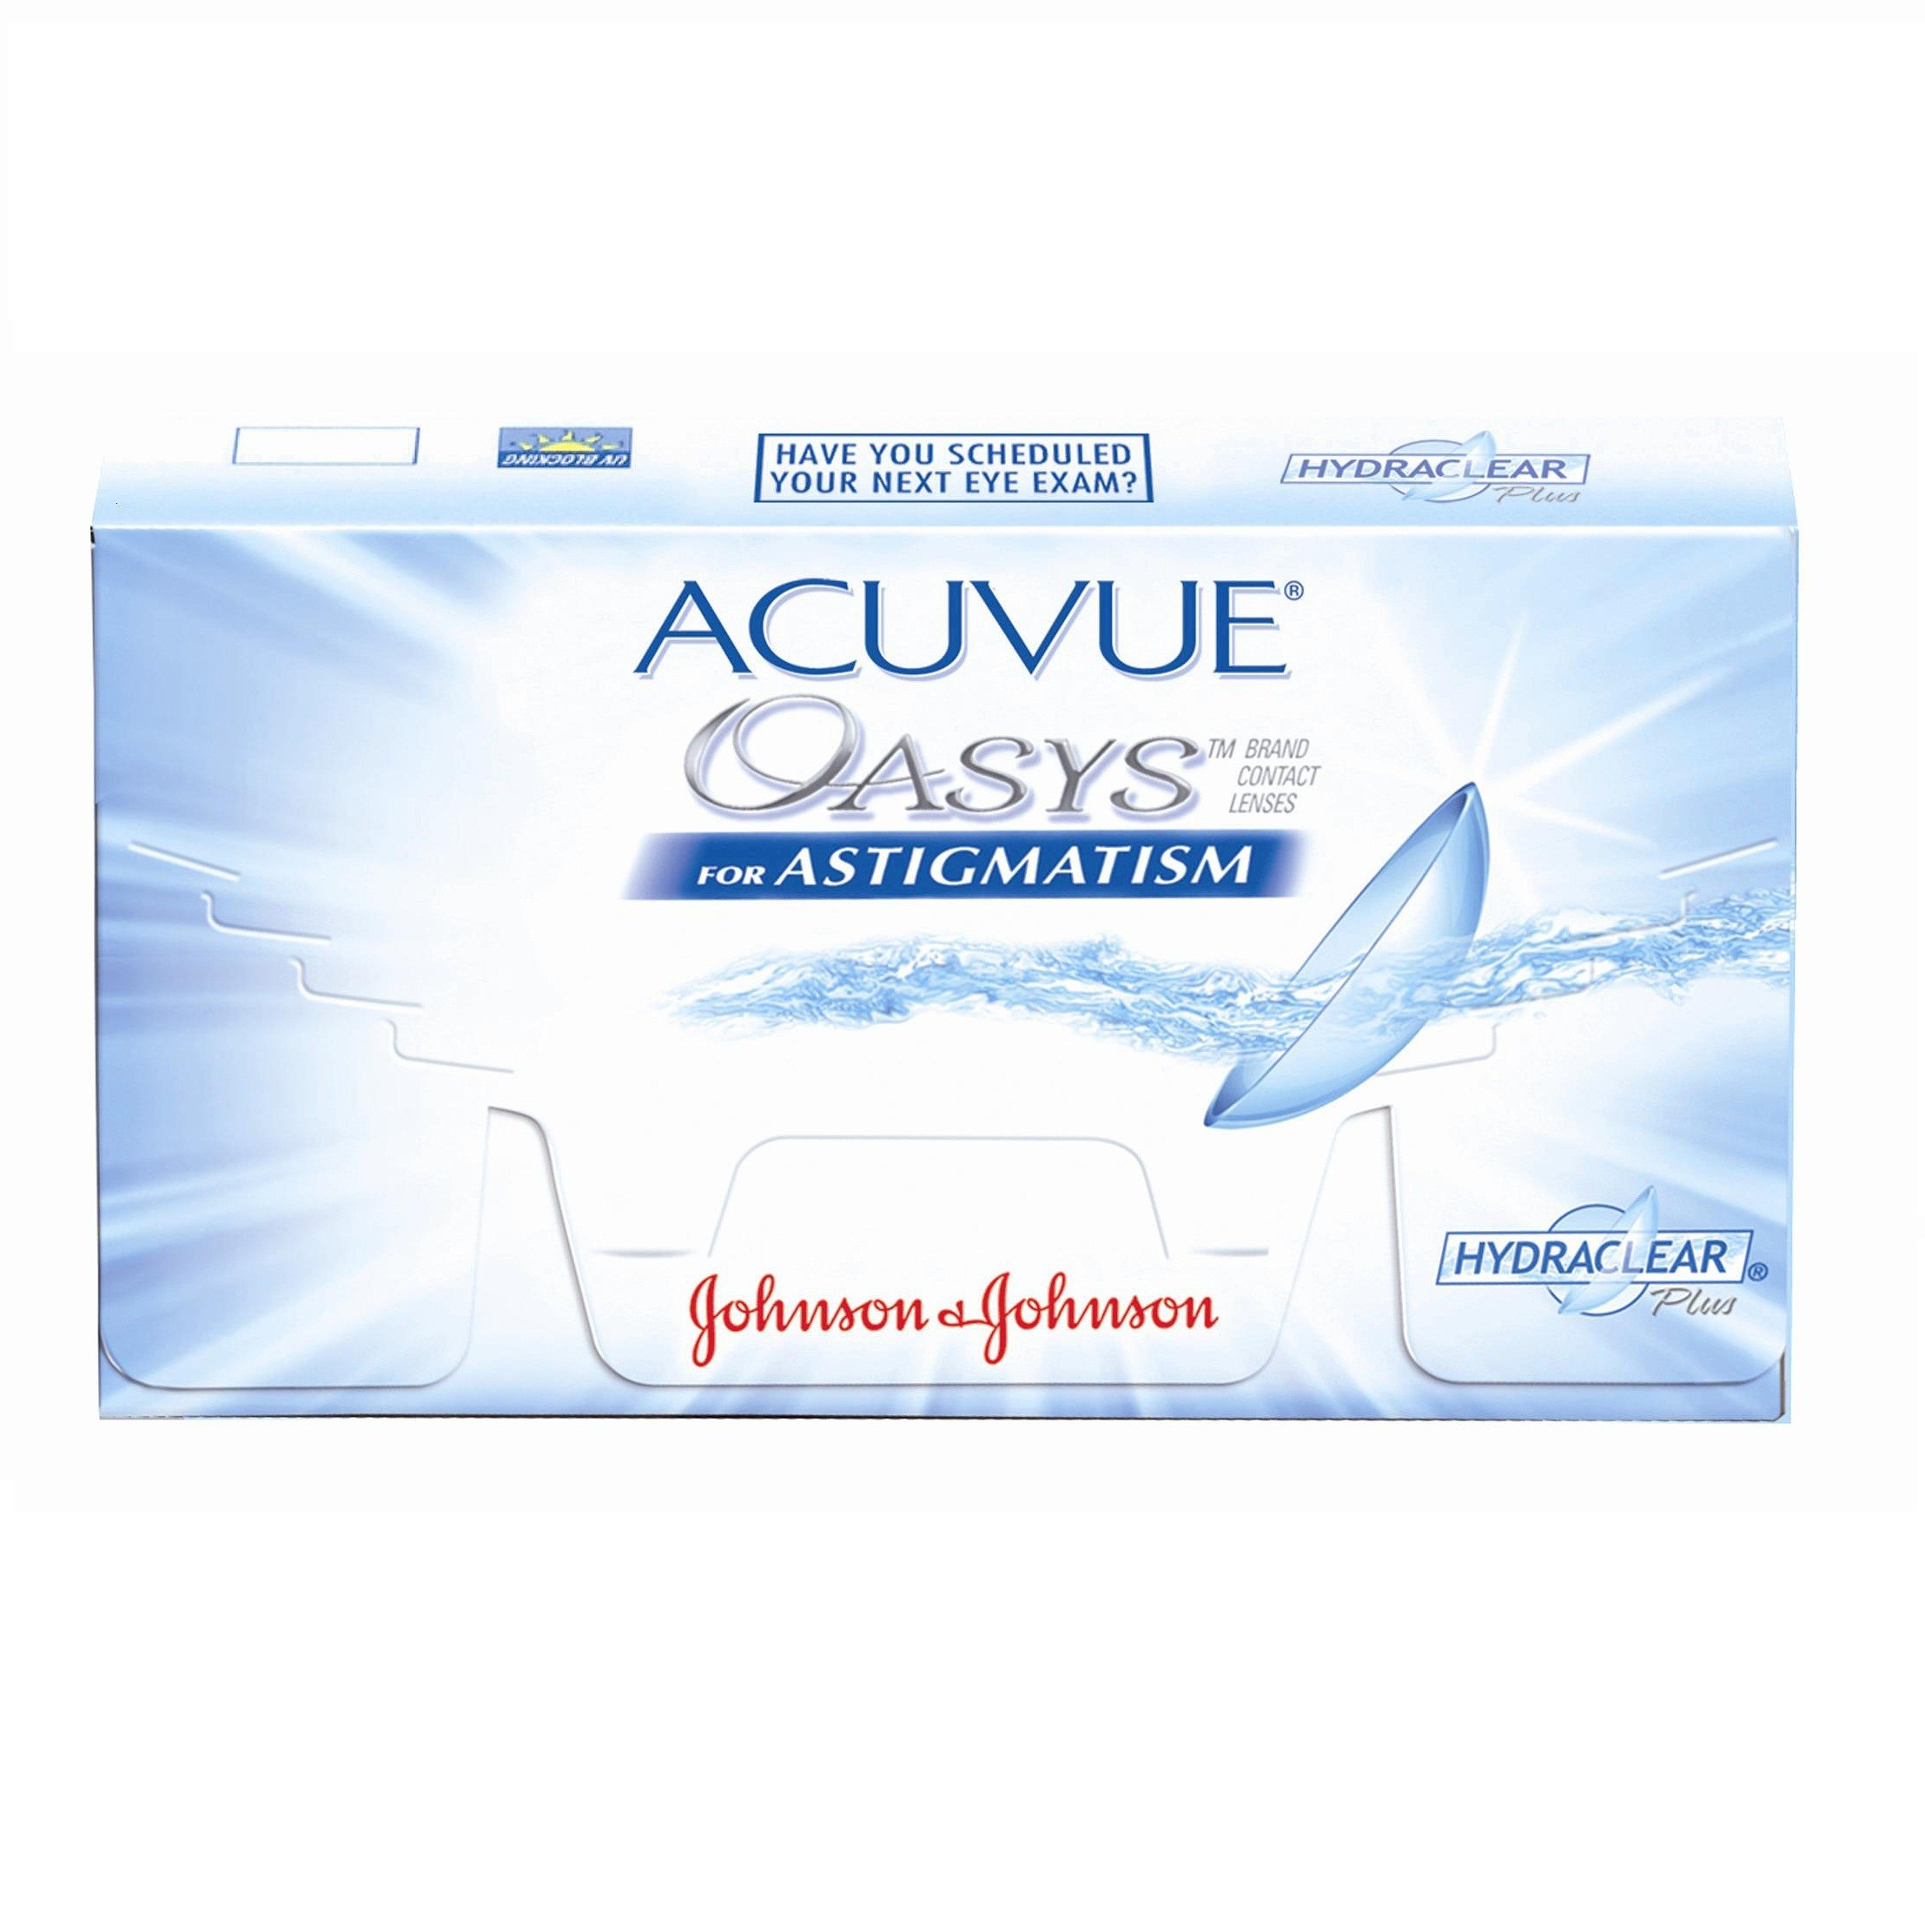 Acuvue oasys with astigmatism coupons